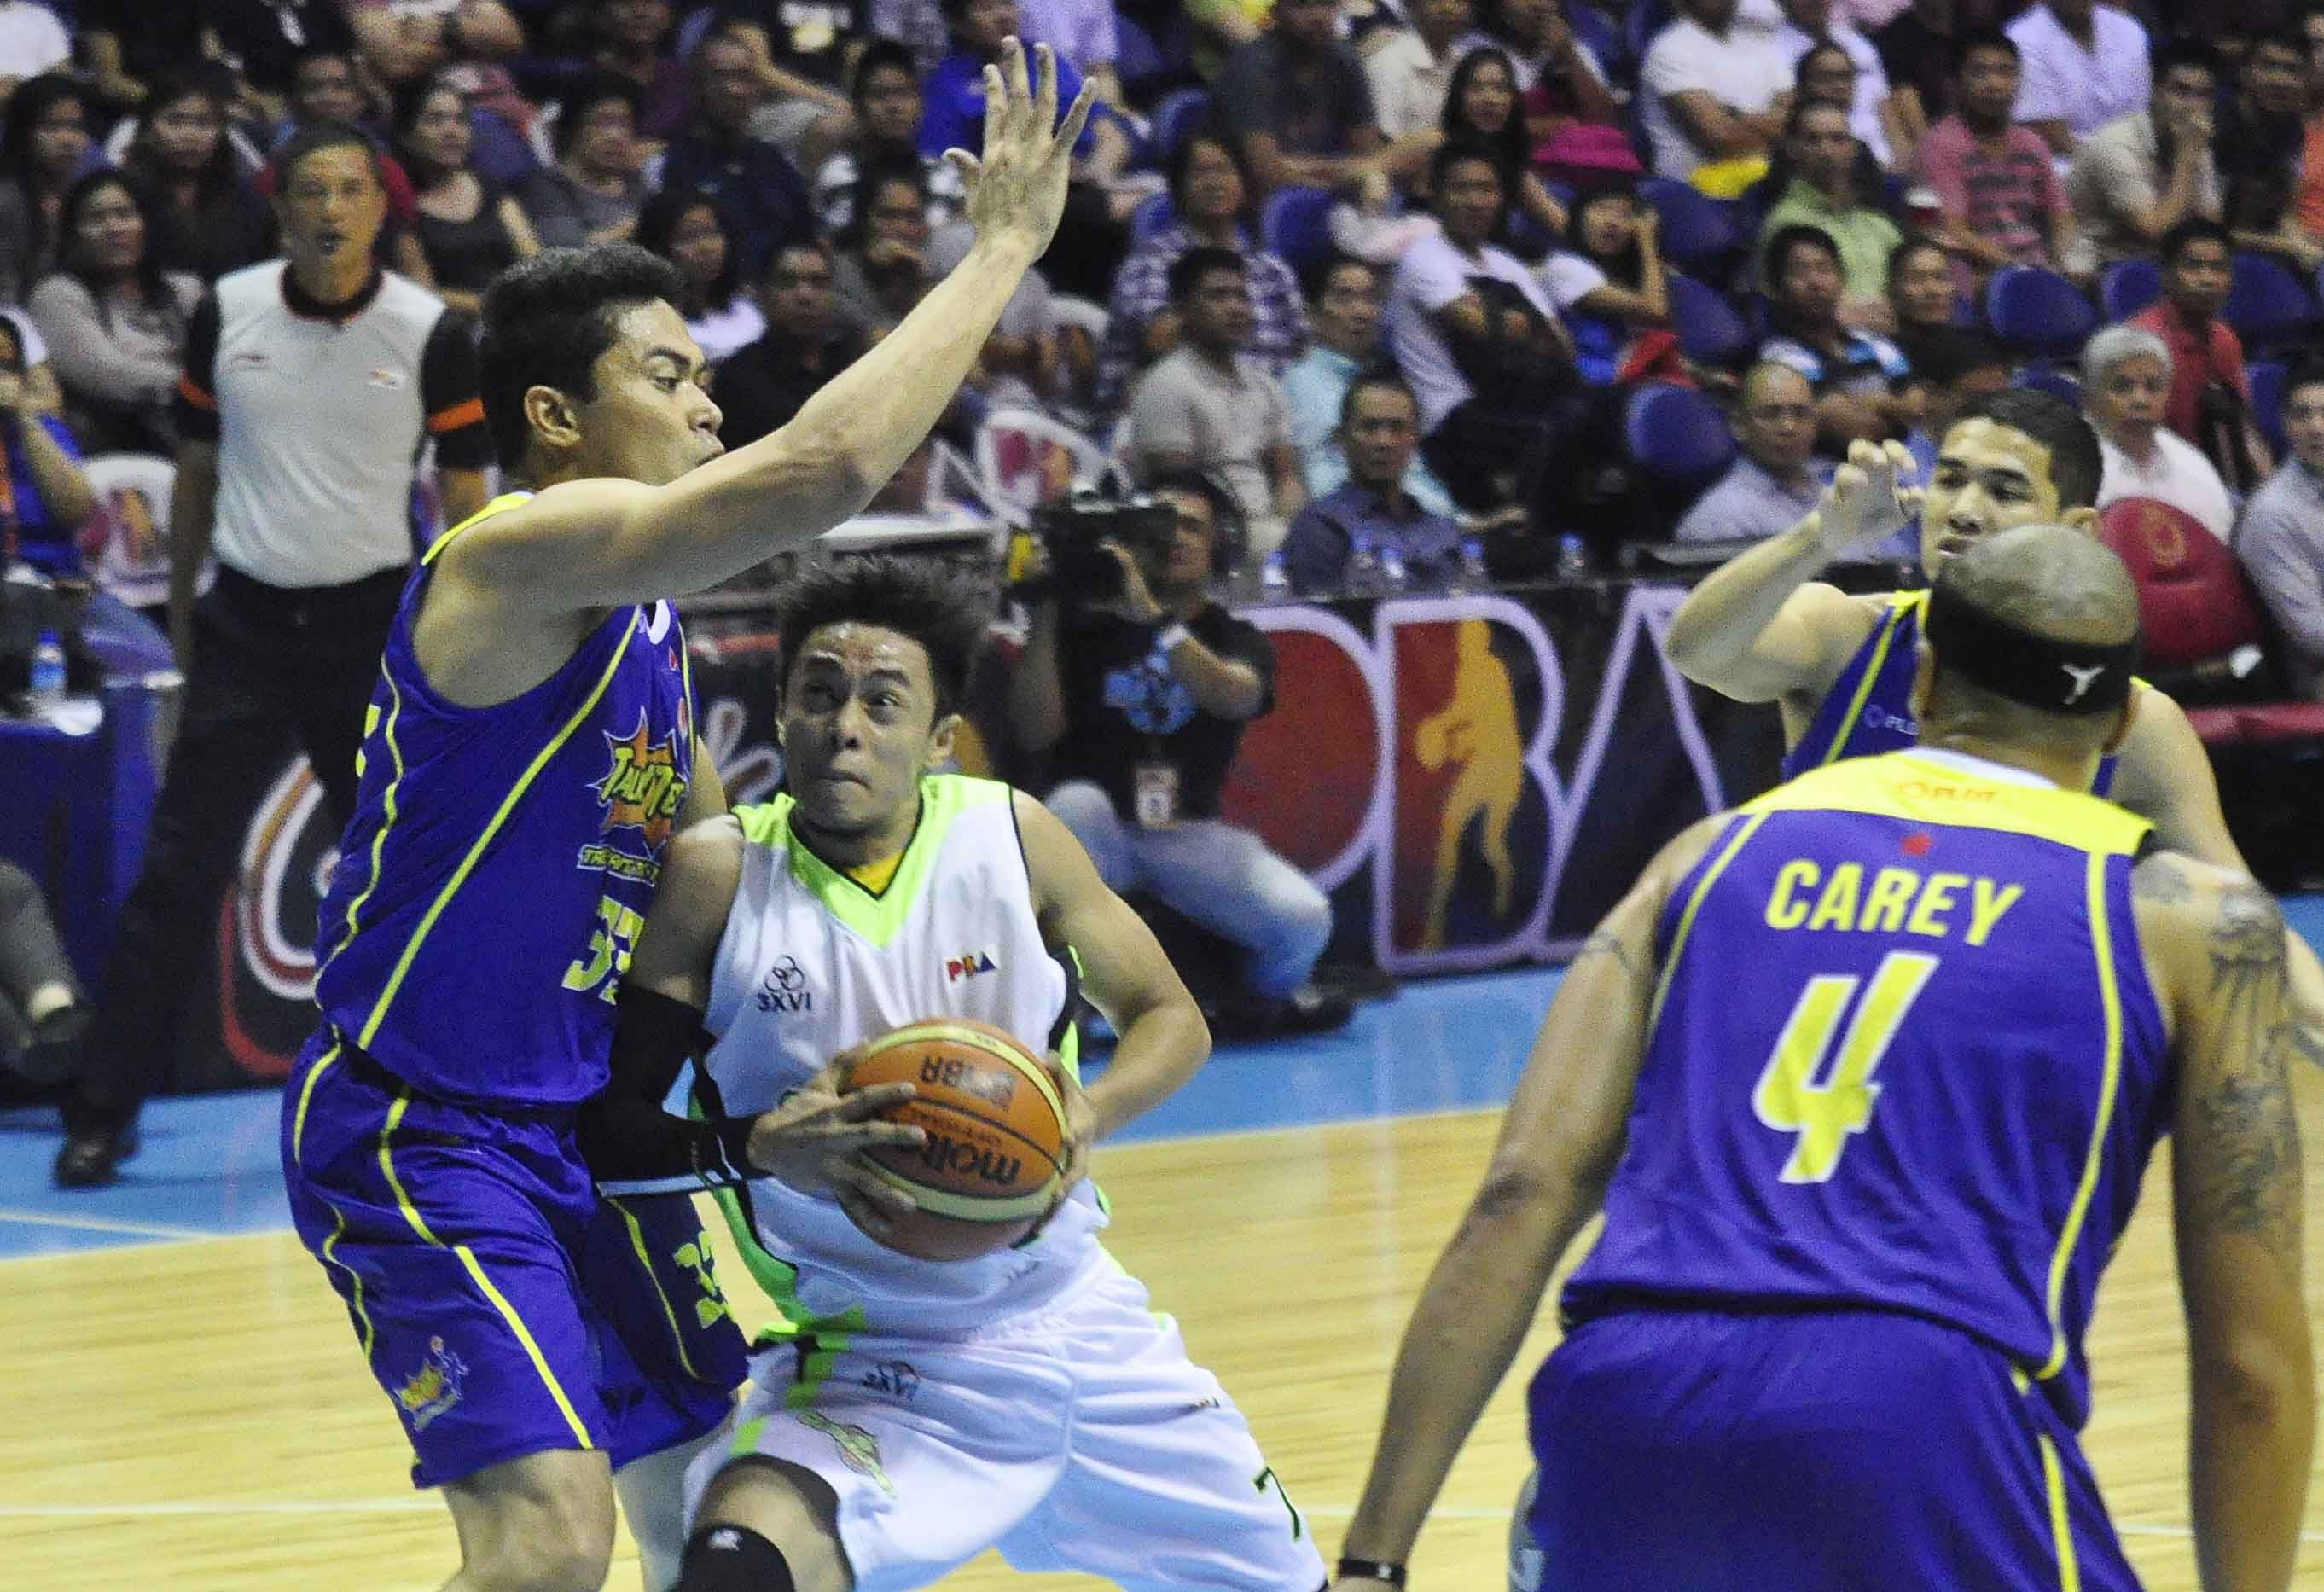 GlobalPort hero Terrence Romeo says rejuvenated offense more than just plain luck